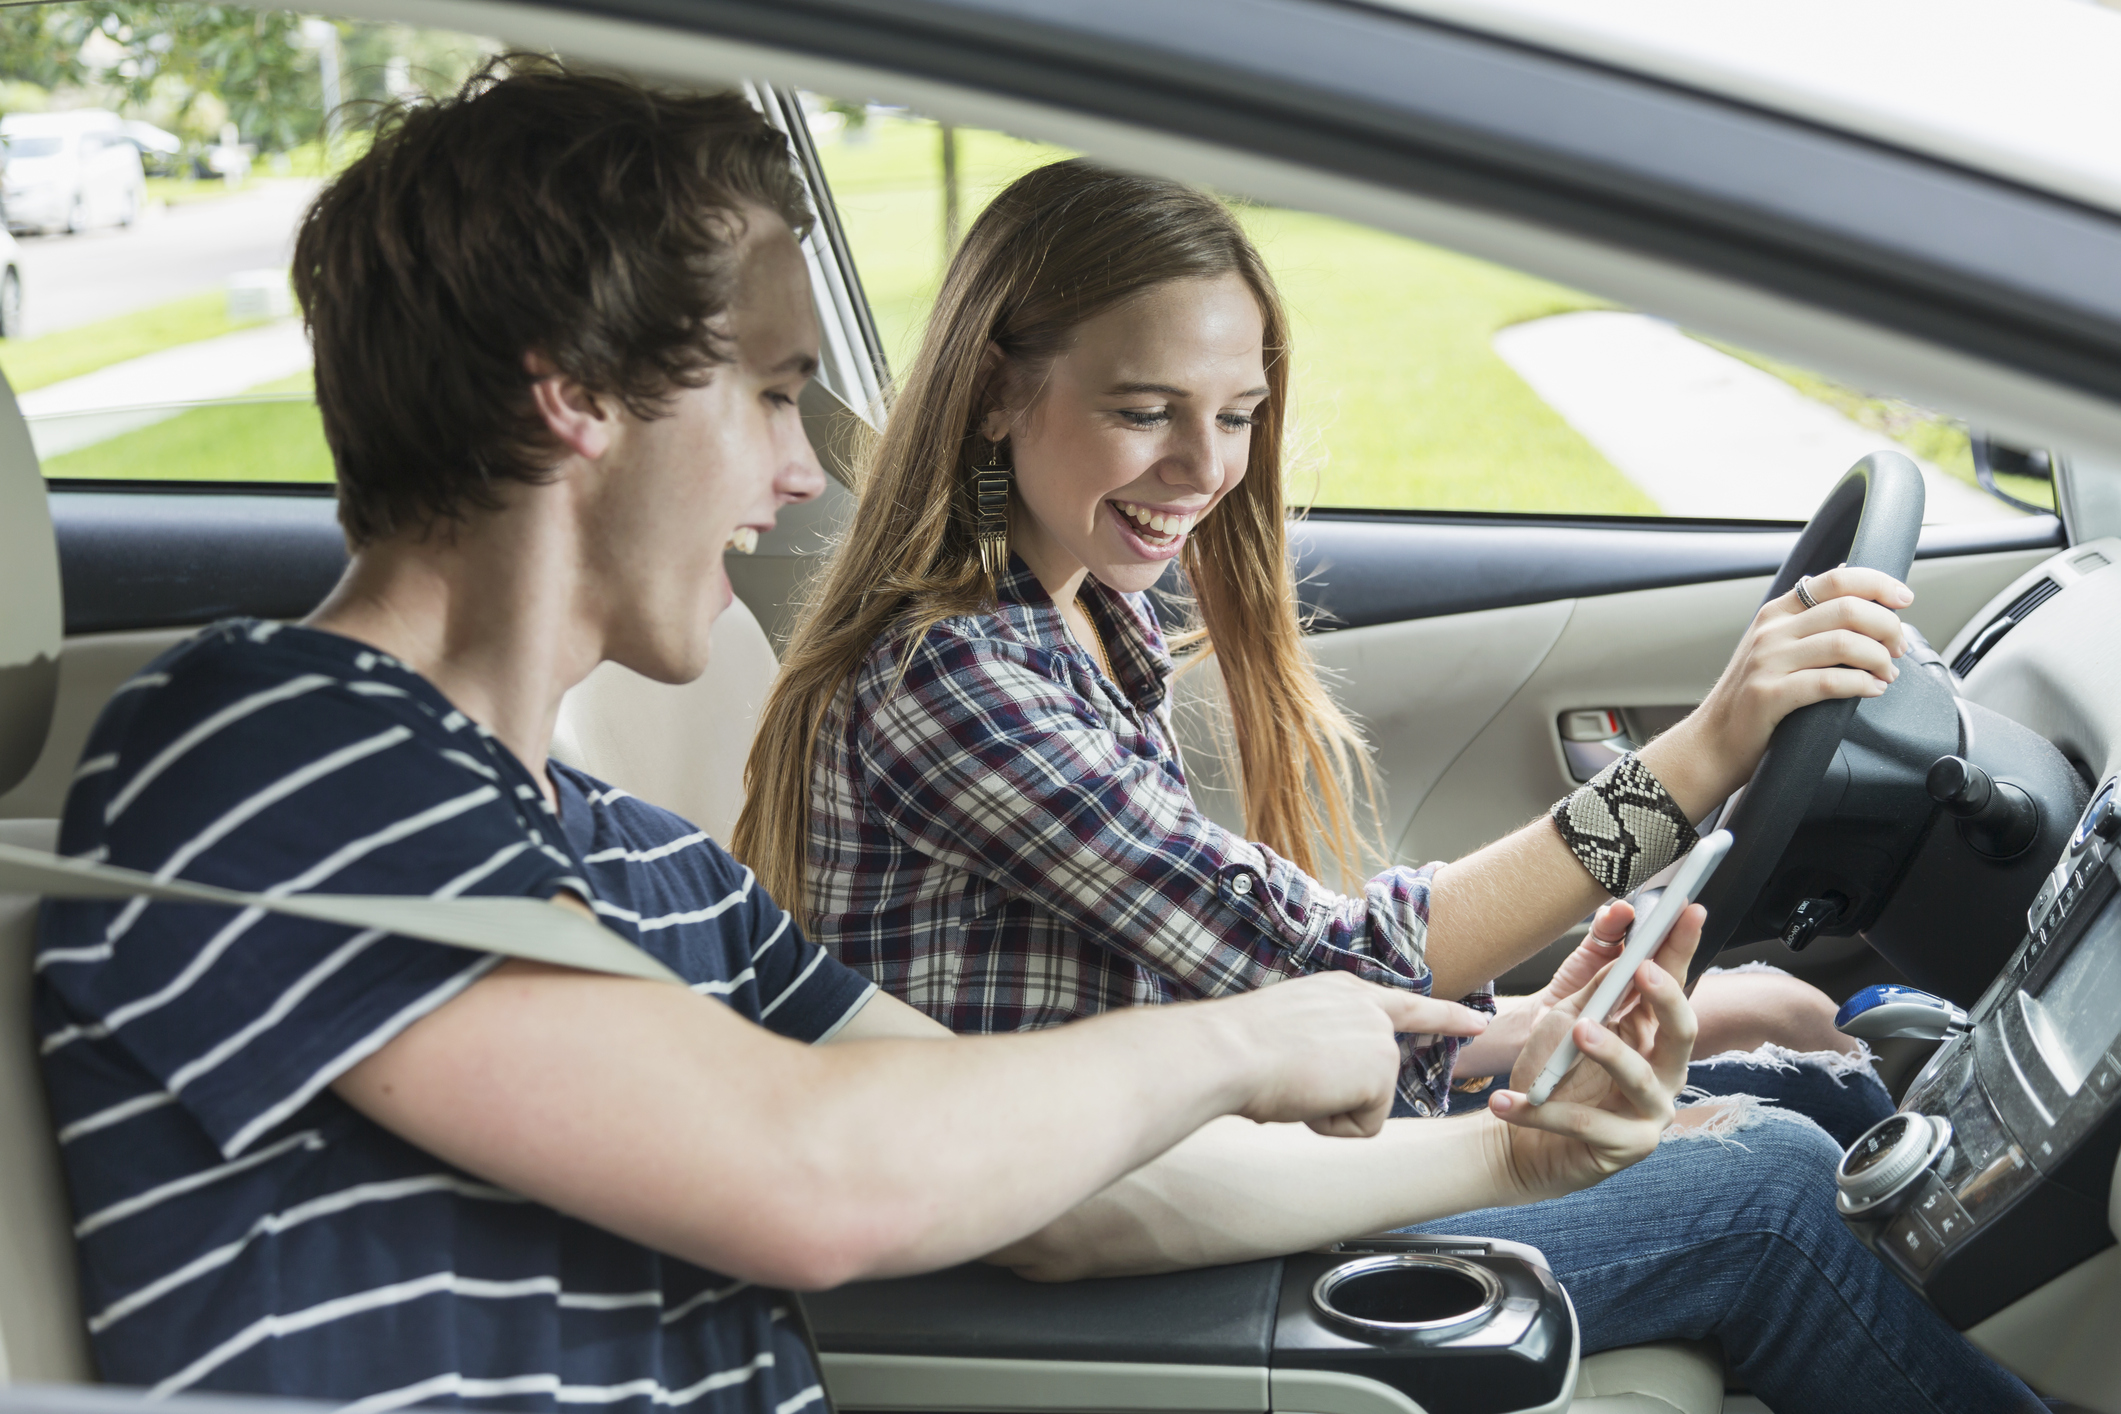 Take-away For The Parents of Teen Drivers